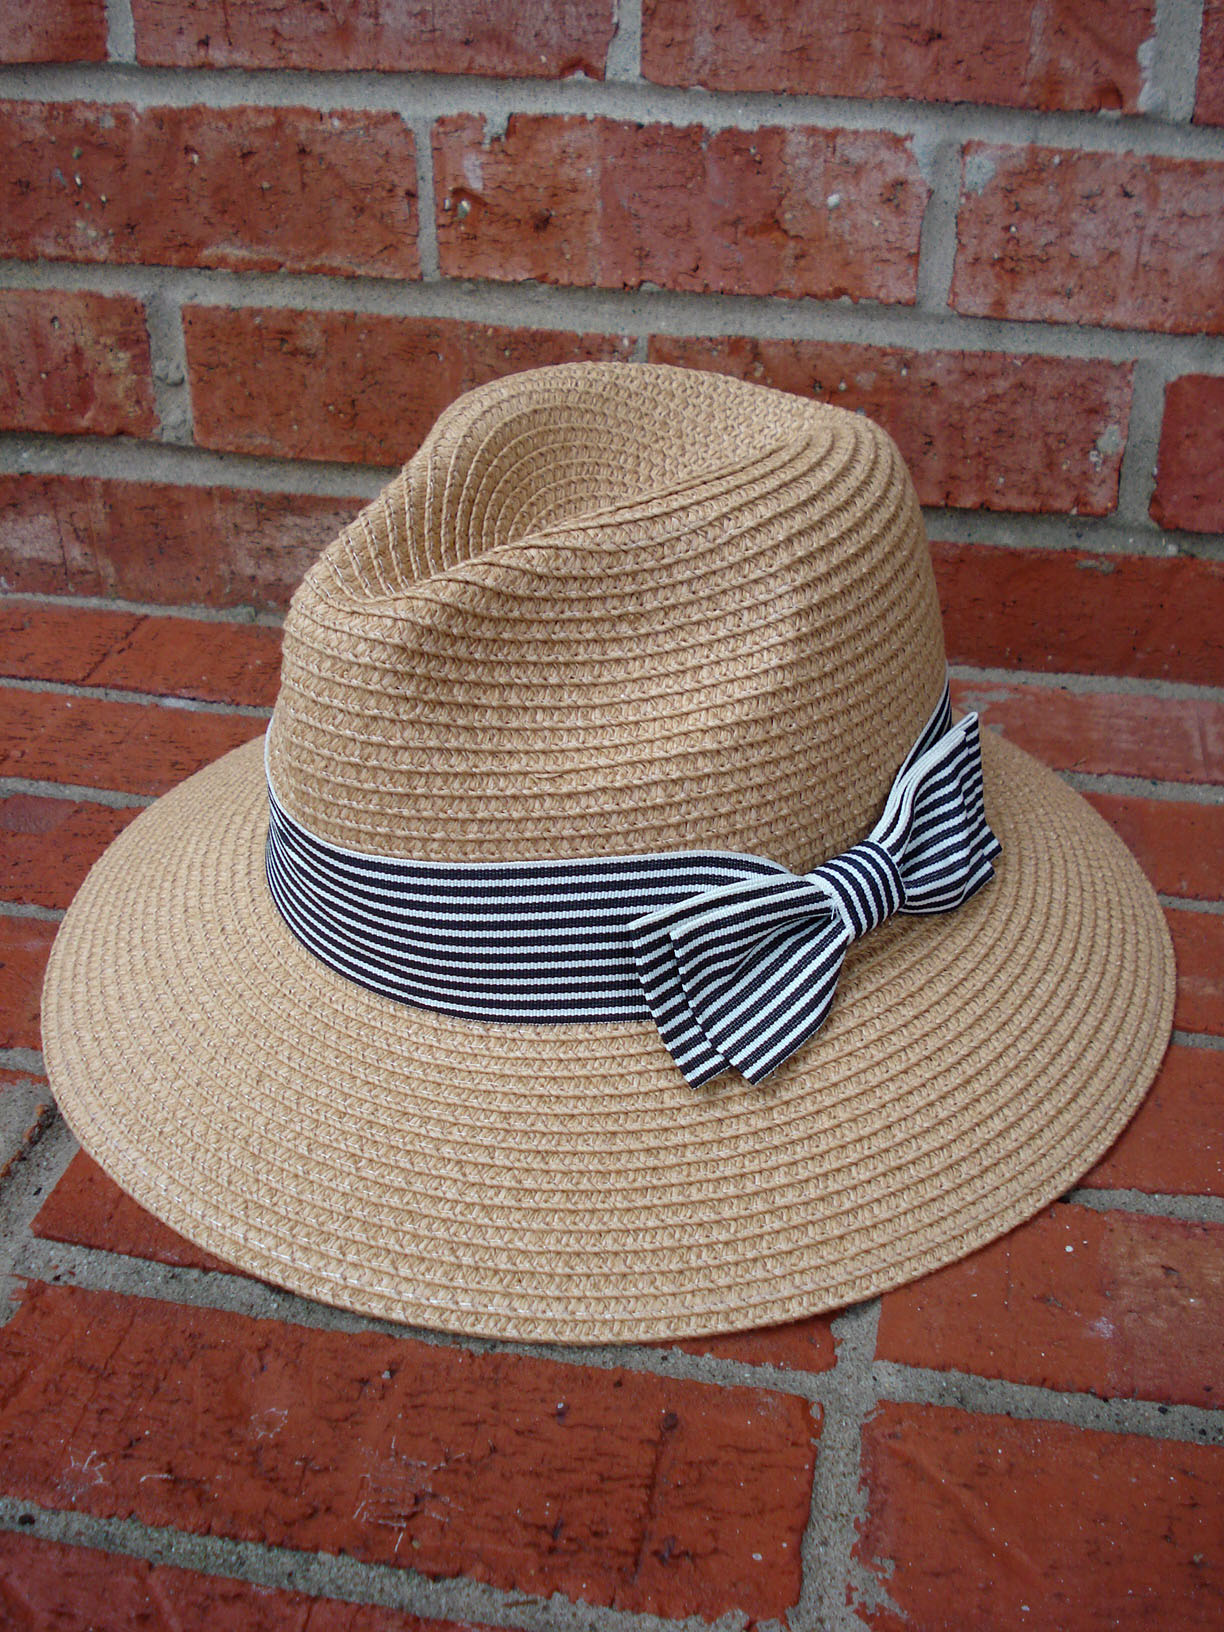 MAGID HATS TAN STRAW STRIPED BOW ACCENT HATBAND FEDORA HAT - Avant ... a2c41314e16